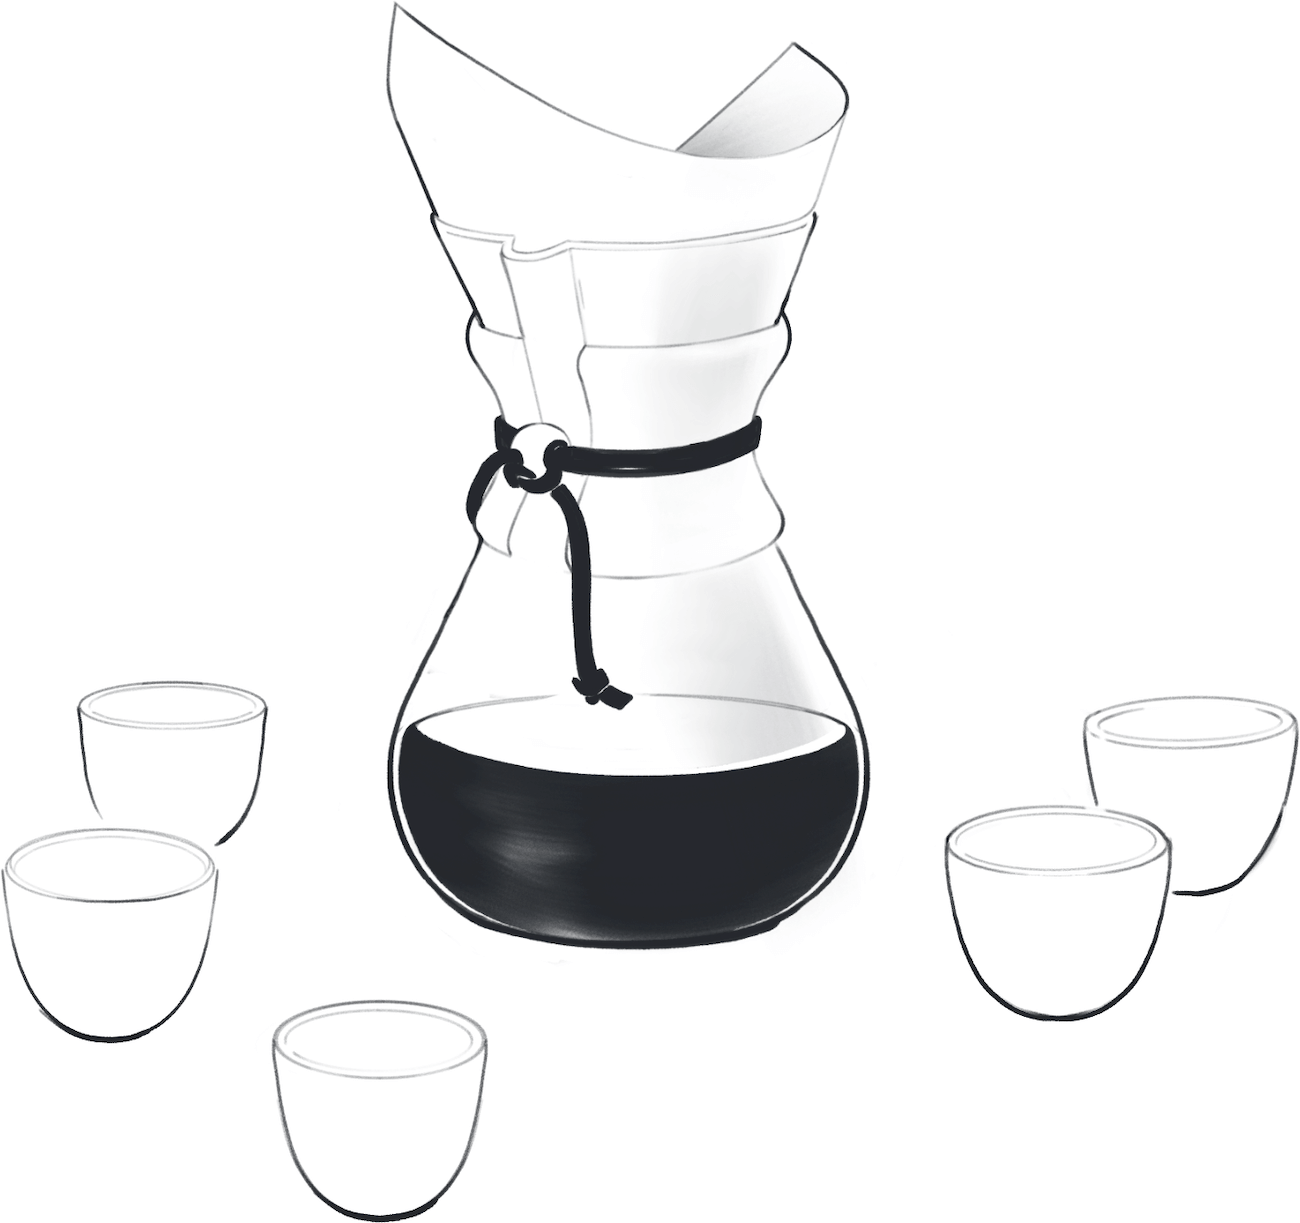 A chemex pour over vessel, surrounded by five small espresso cups